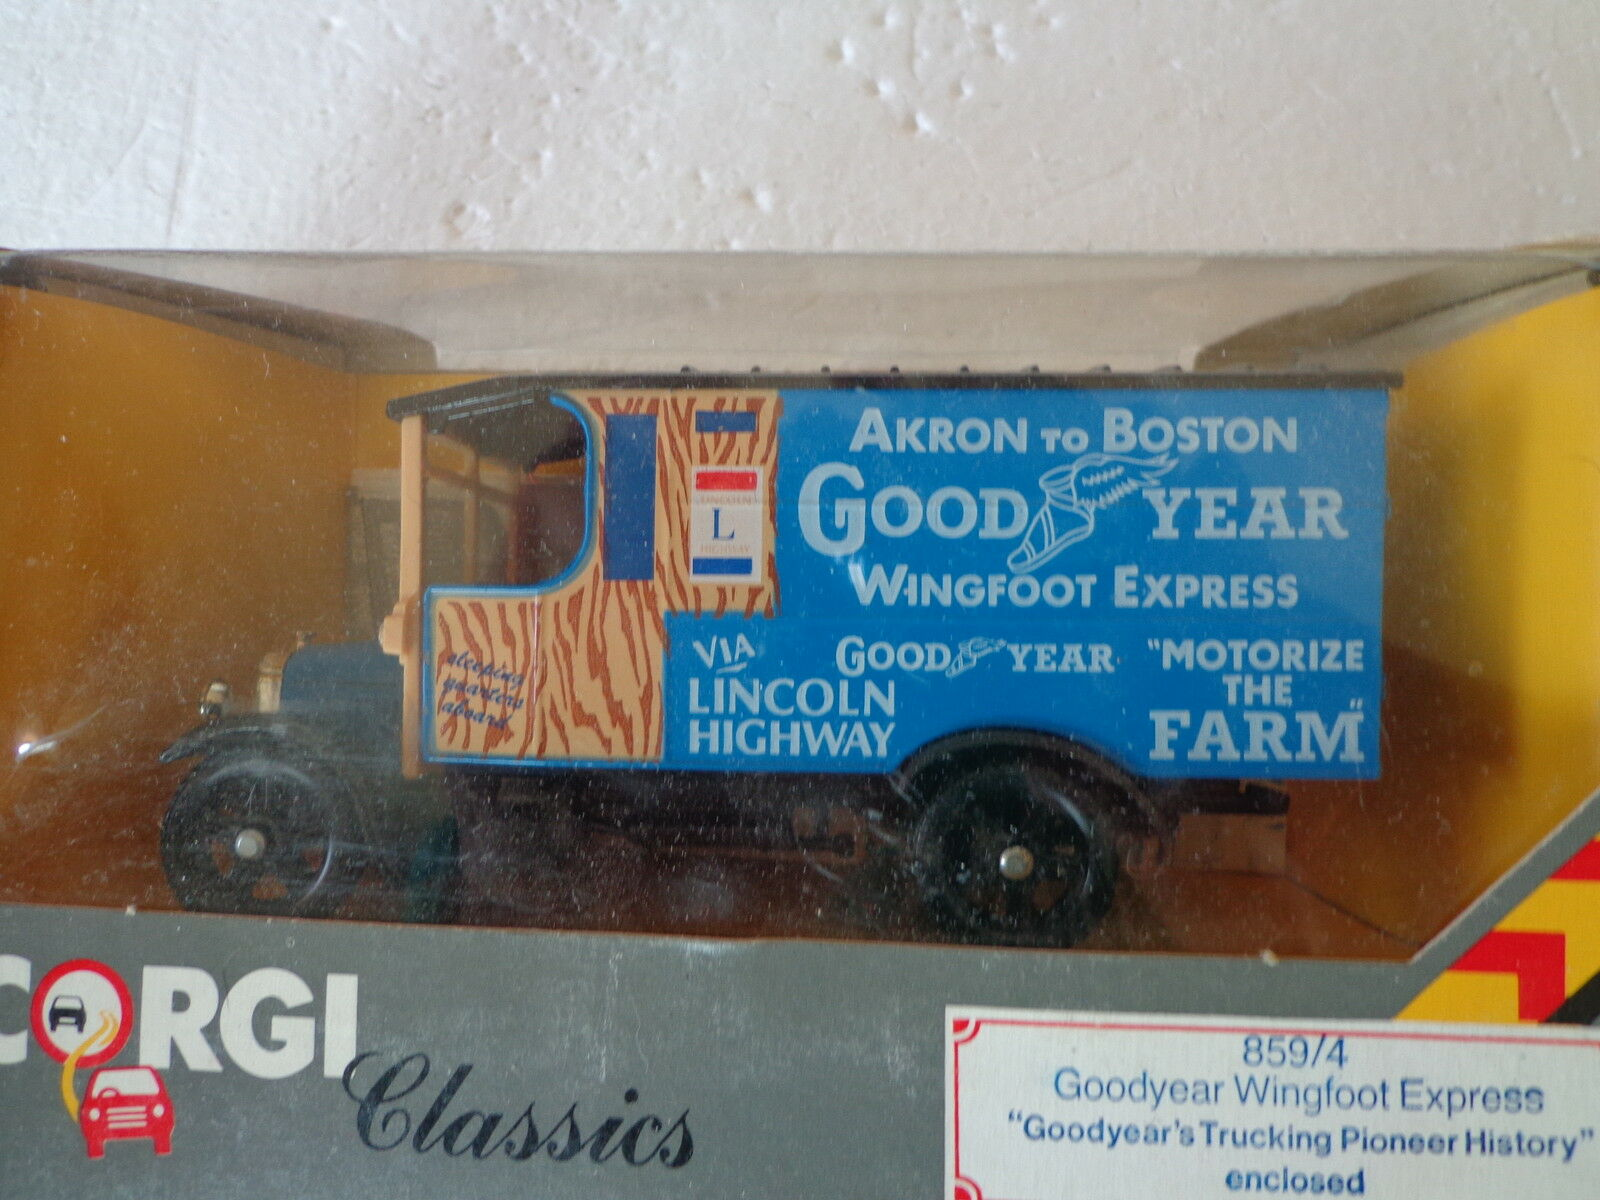 CORGI CLASSIC'S MODEL A GOODYEAR WINGFOOT EXPRESS DELIVERY